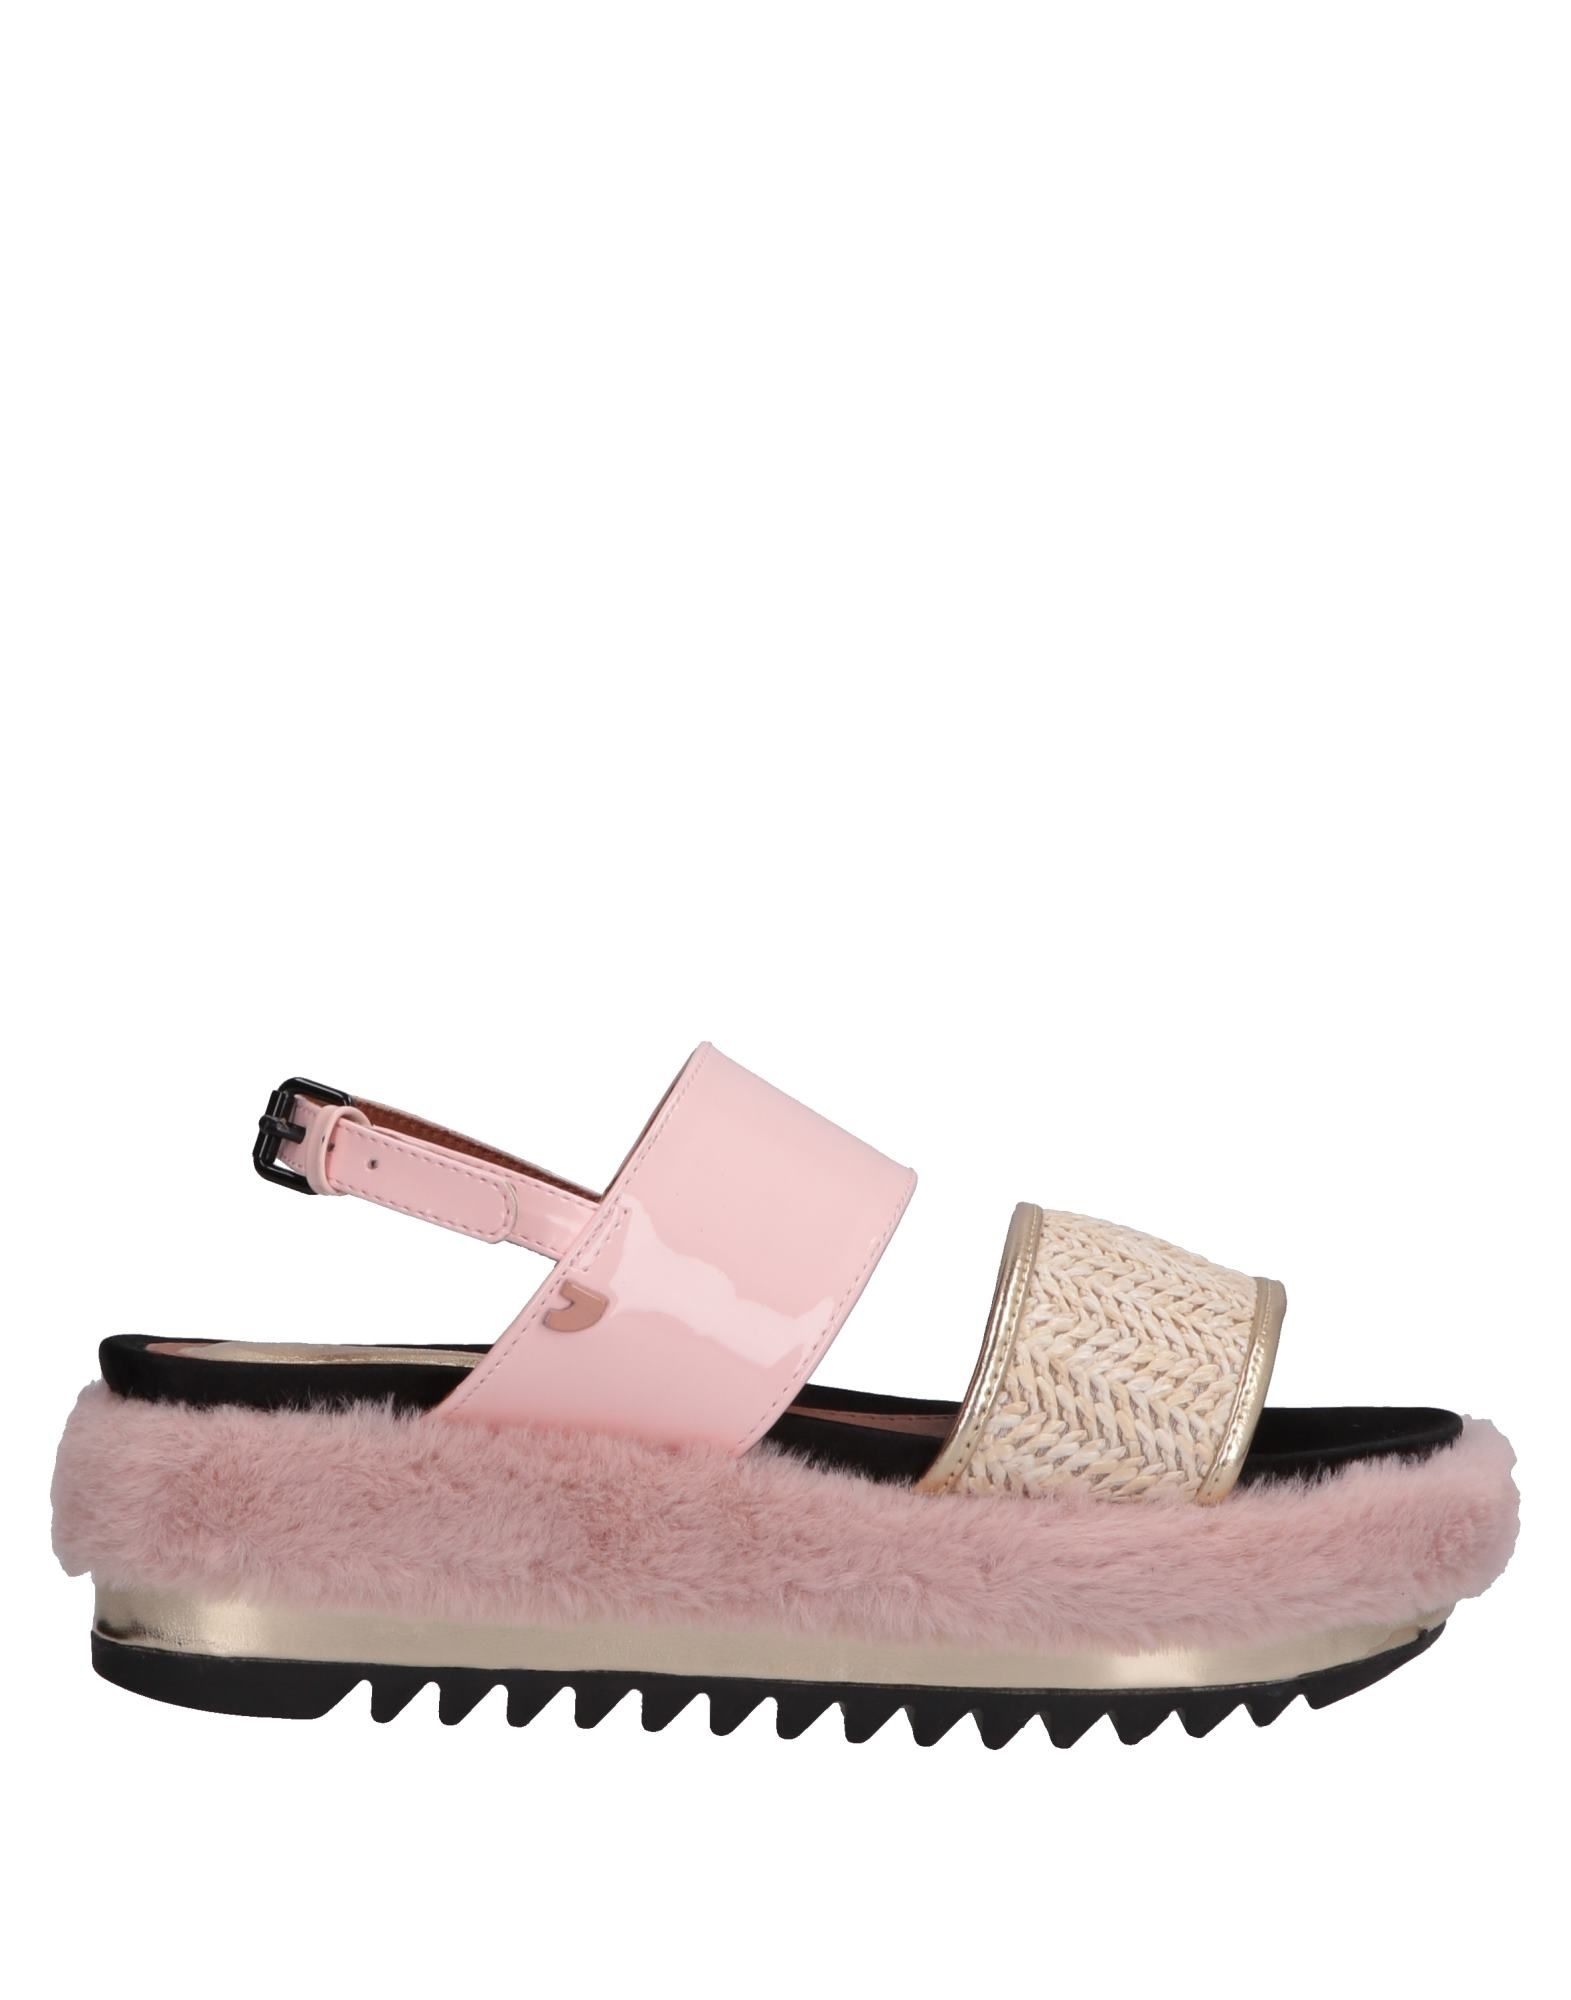 Gioseppo Sandals - Women Gioseppo Sandals online on 11575864IL  United Kingdom - 11575864IL on 520af1